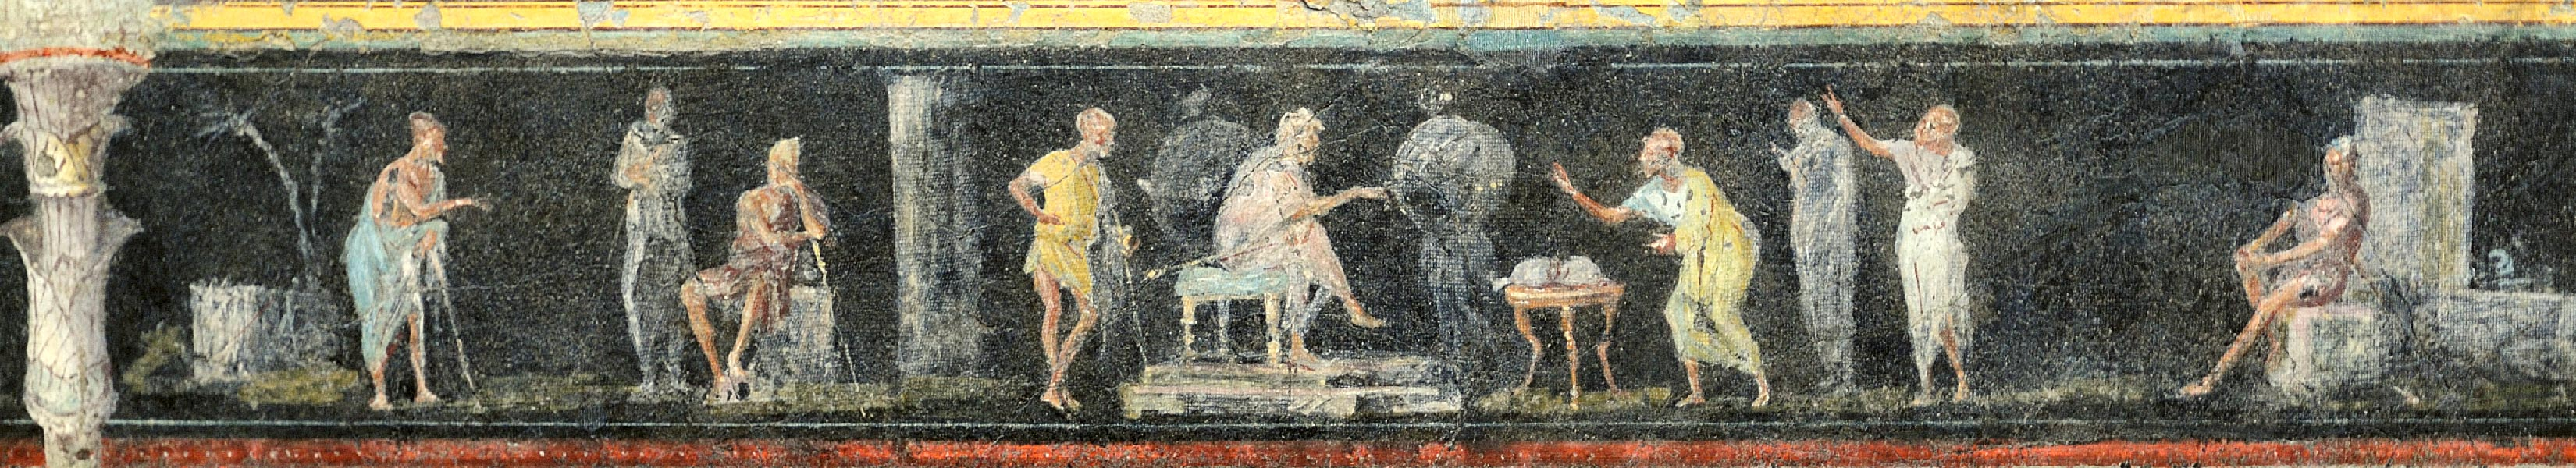 Frieze of triclinium. Villa Farnesina. Part 2. Frieze of triclinium. Villa Farnesina. Part 2. Rome, Roman National Museum, Palazzo Massimo alle Terme